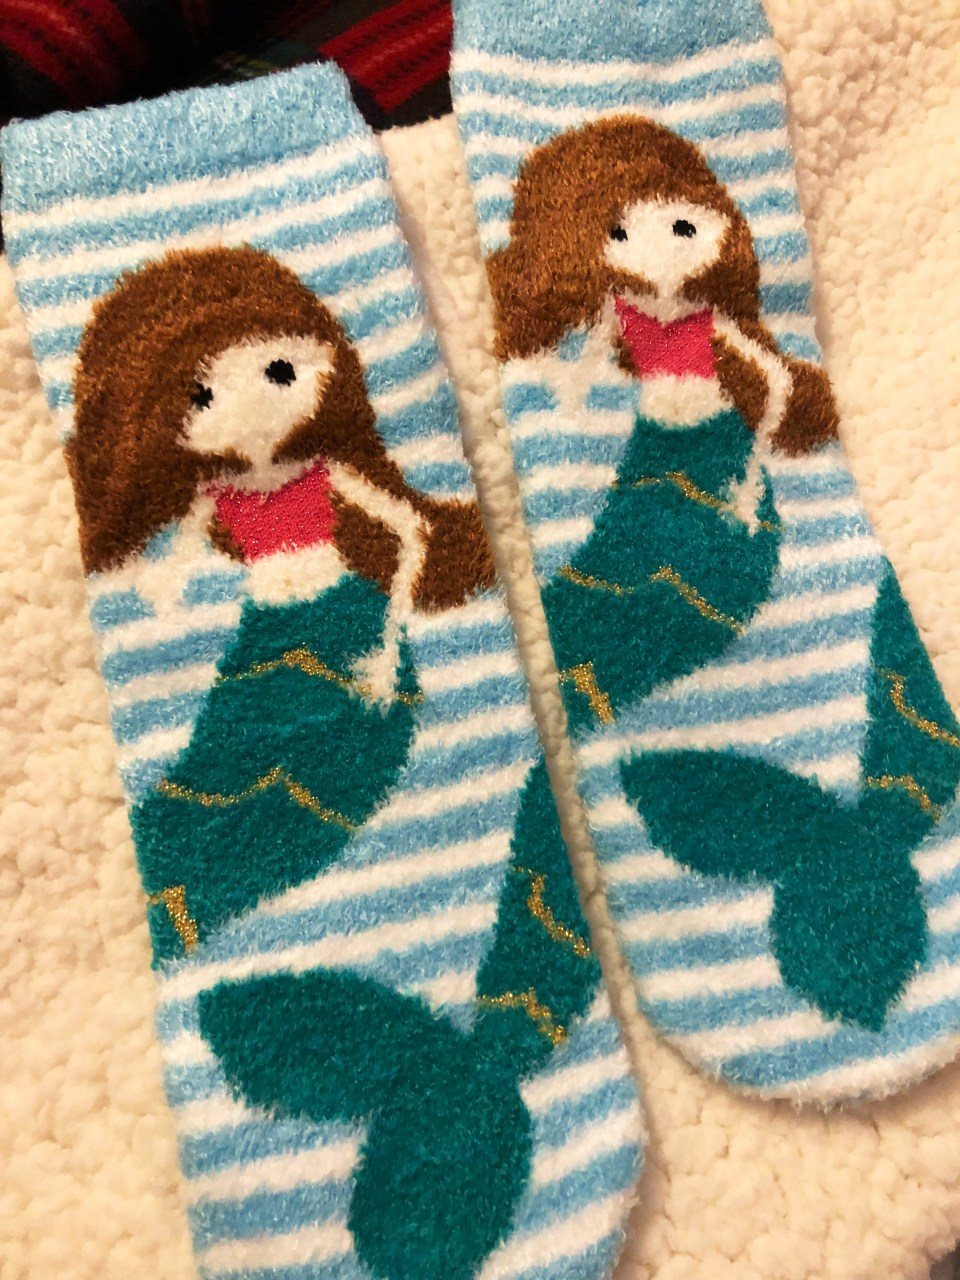 Mermaid Fuzzy Socks